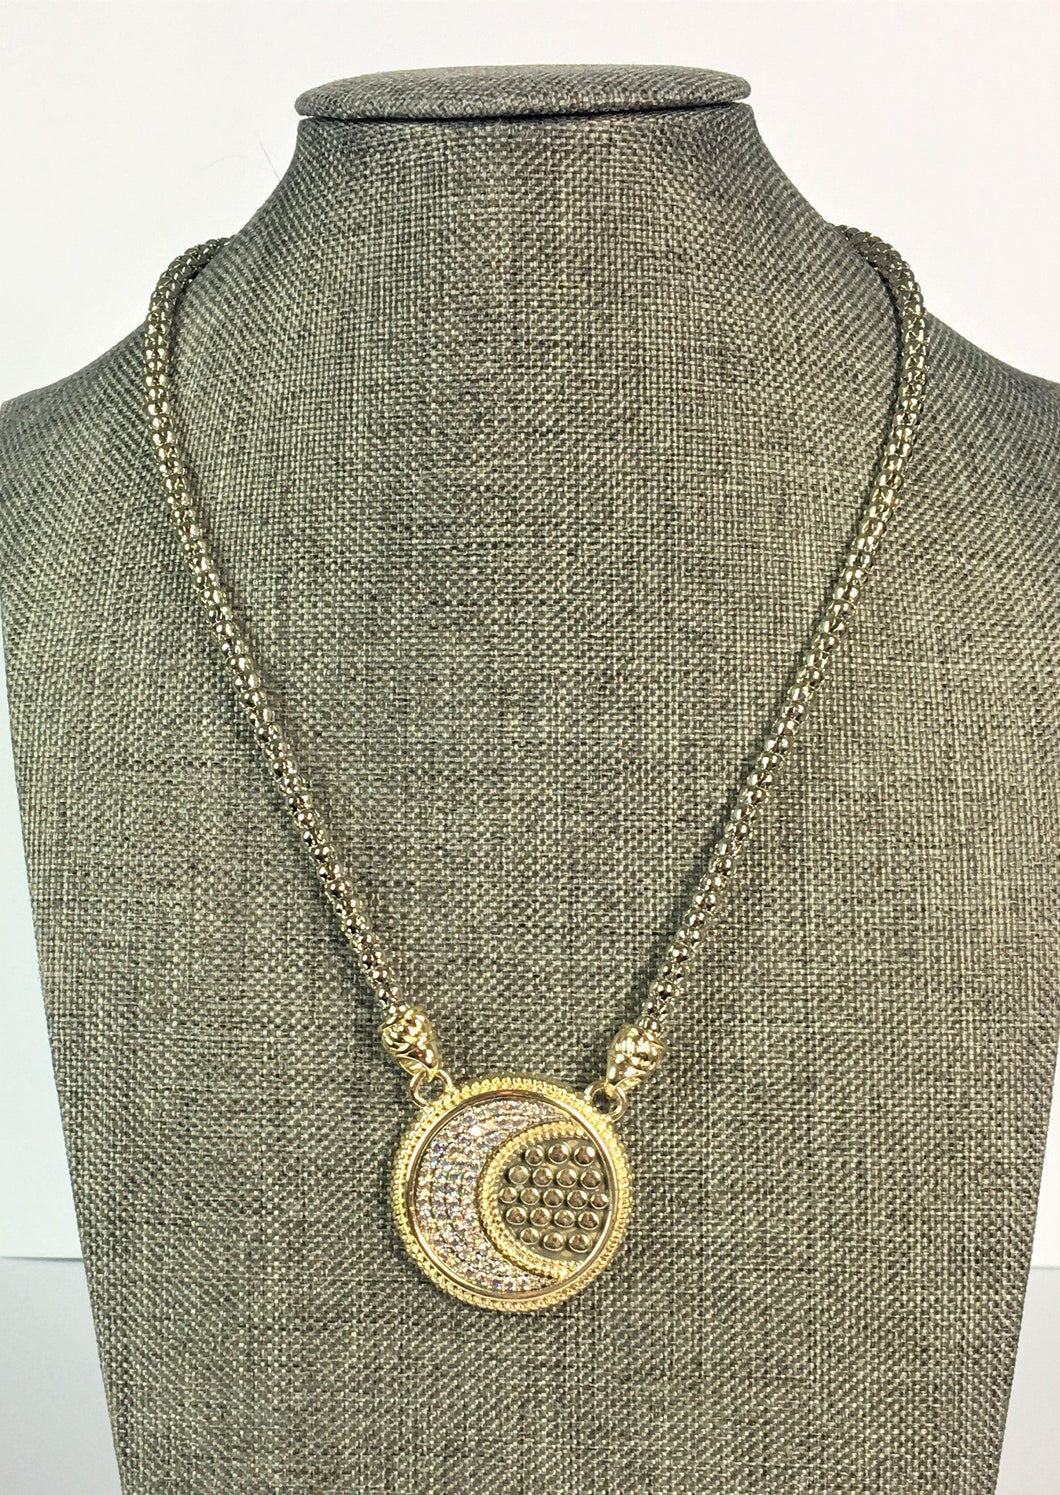 John Hardy Inspired Moon Necklace